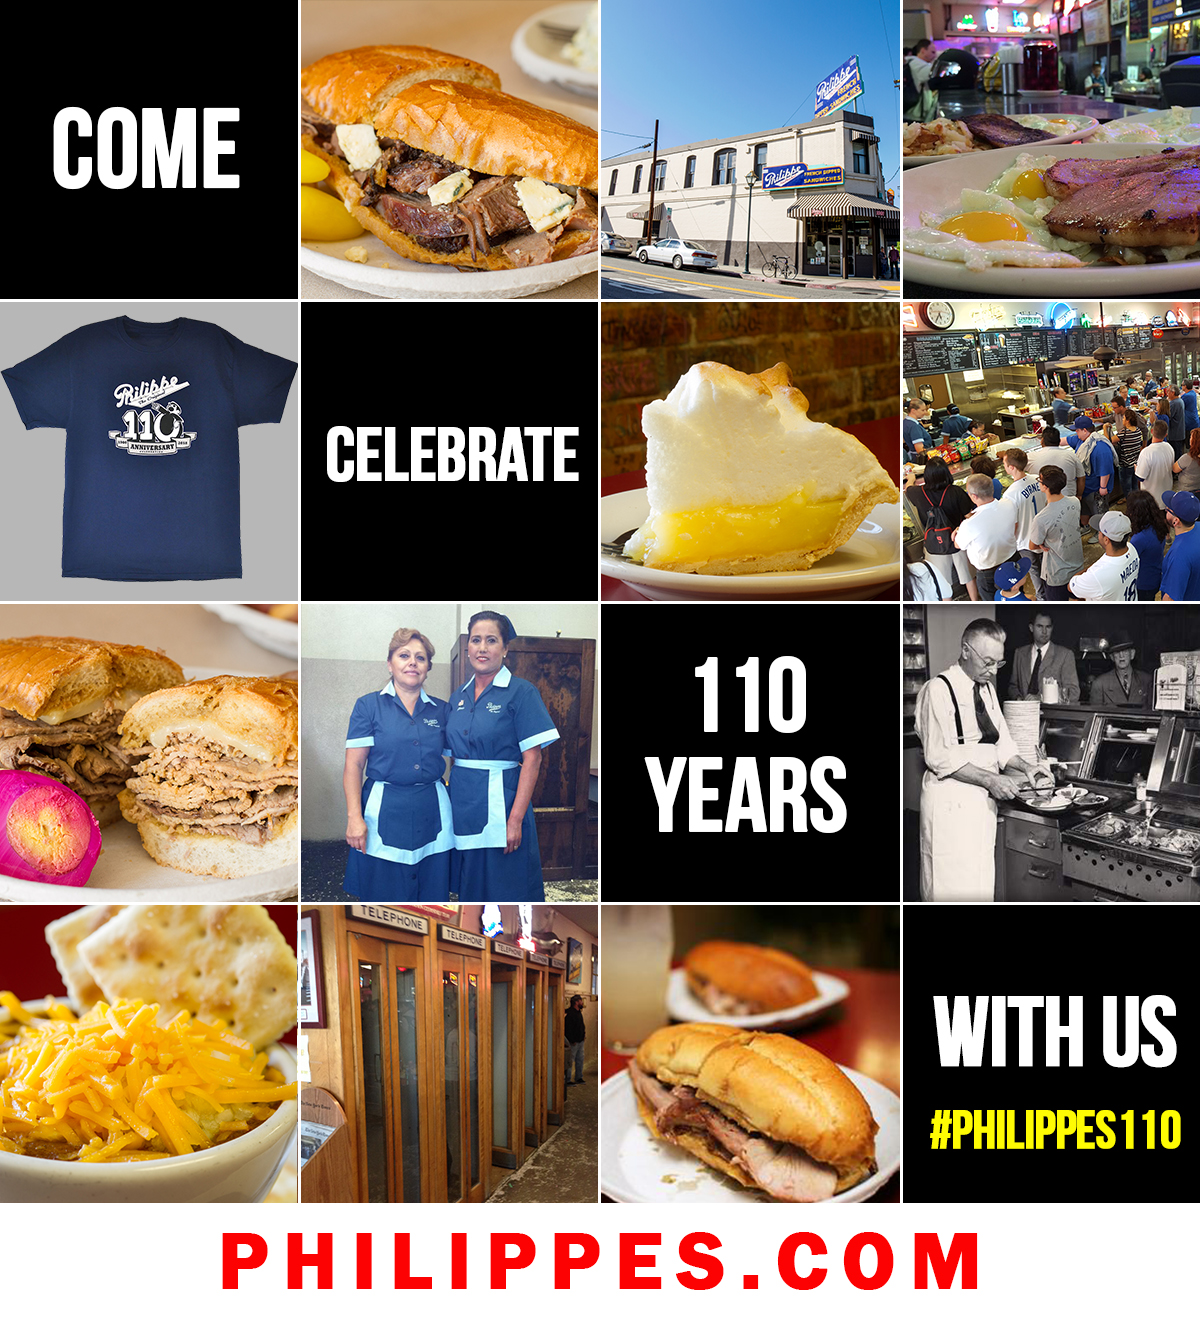 Philippe's 110th Anniversary Instagram Contest